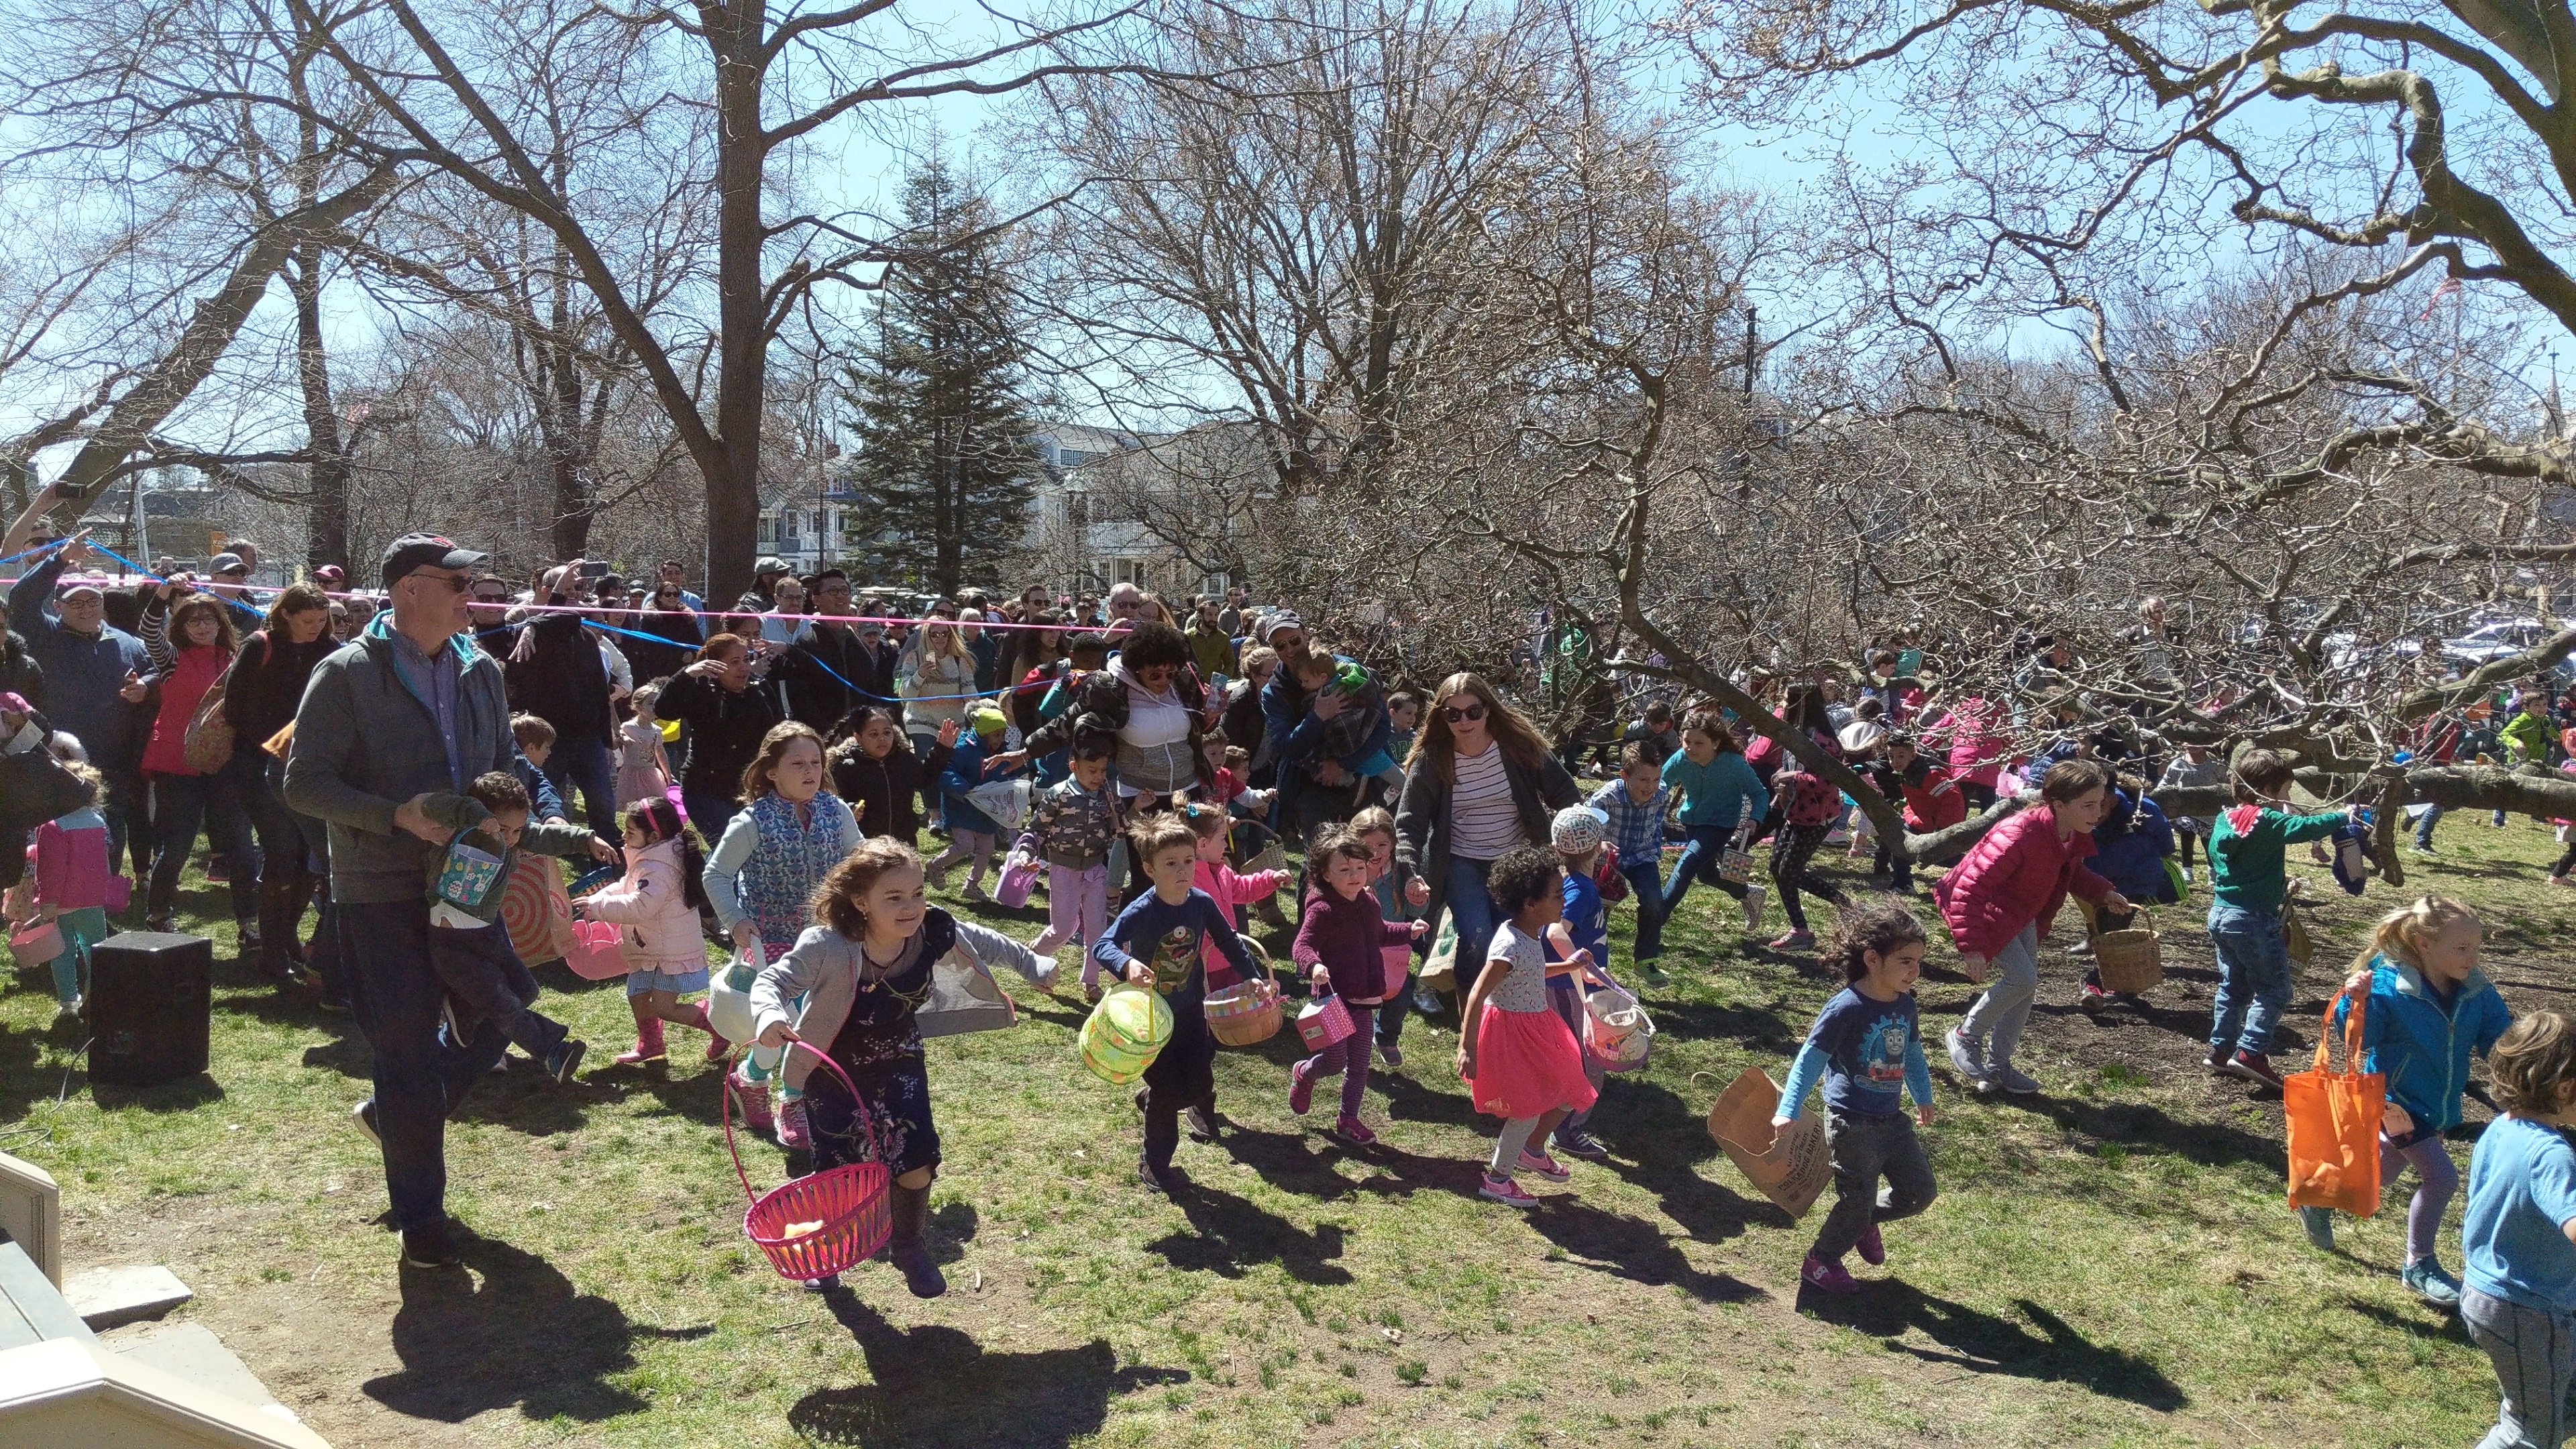 Spring on the Lawn – The EggSpectacular Annual Egg Hunt and Spring Celebration